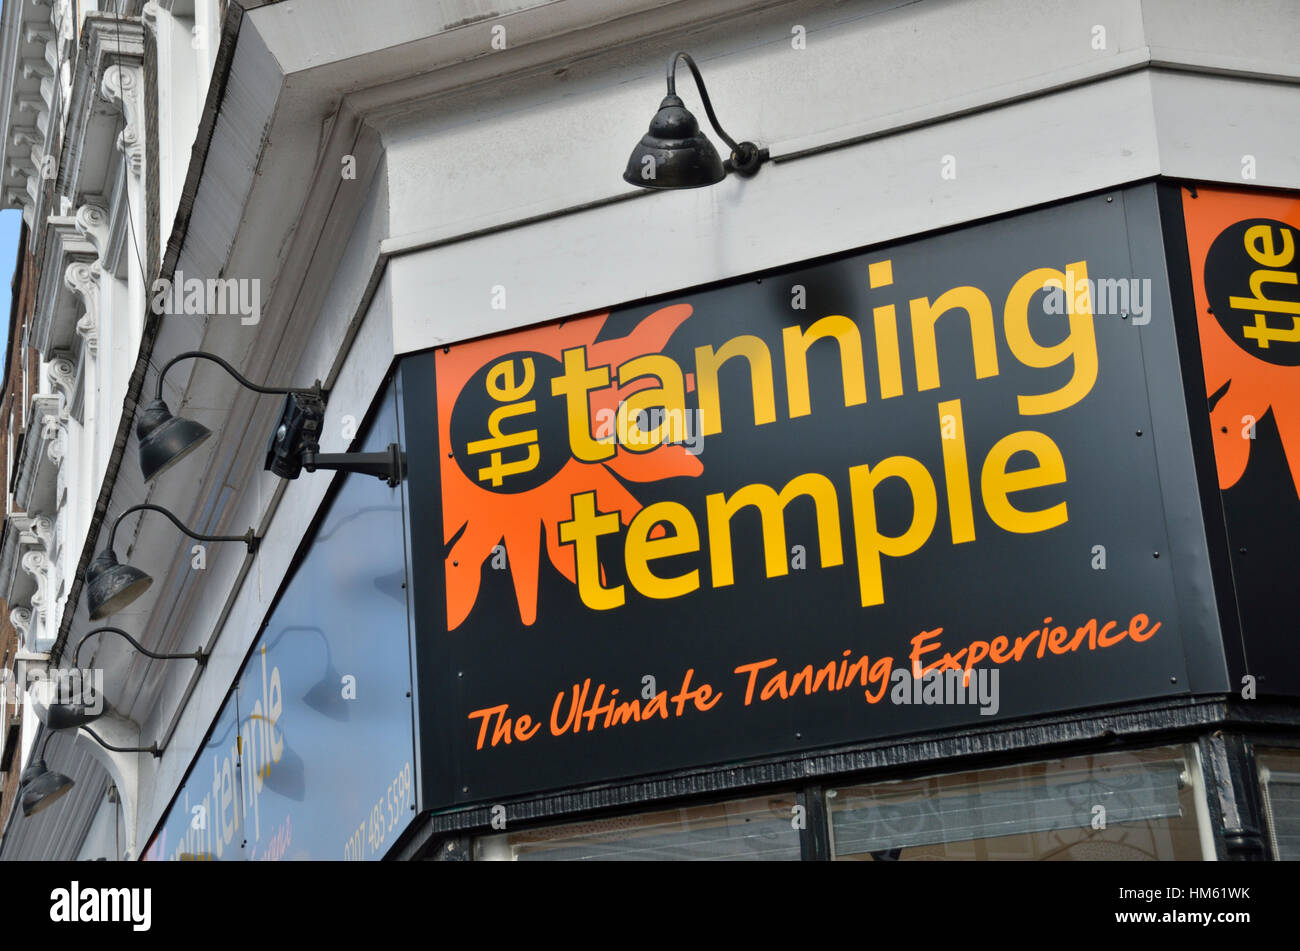 Tanning shop sign - Stock Image